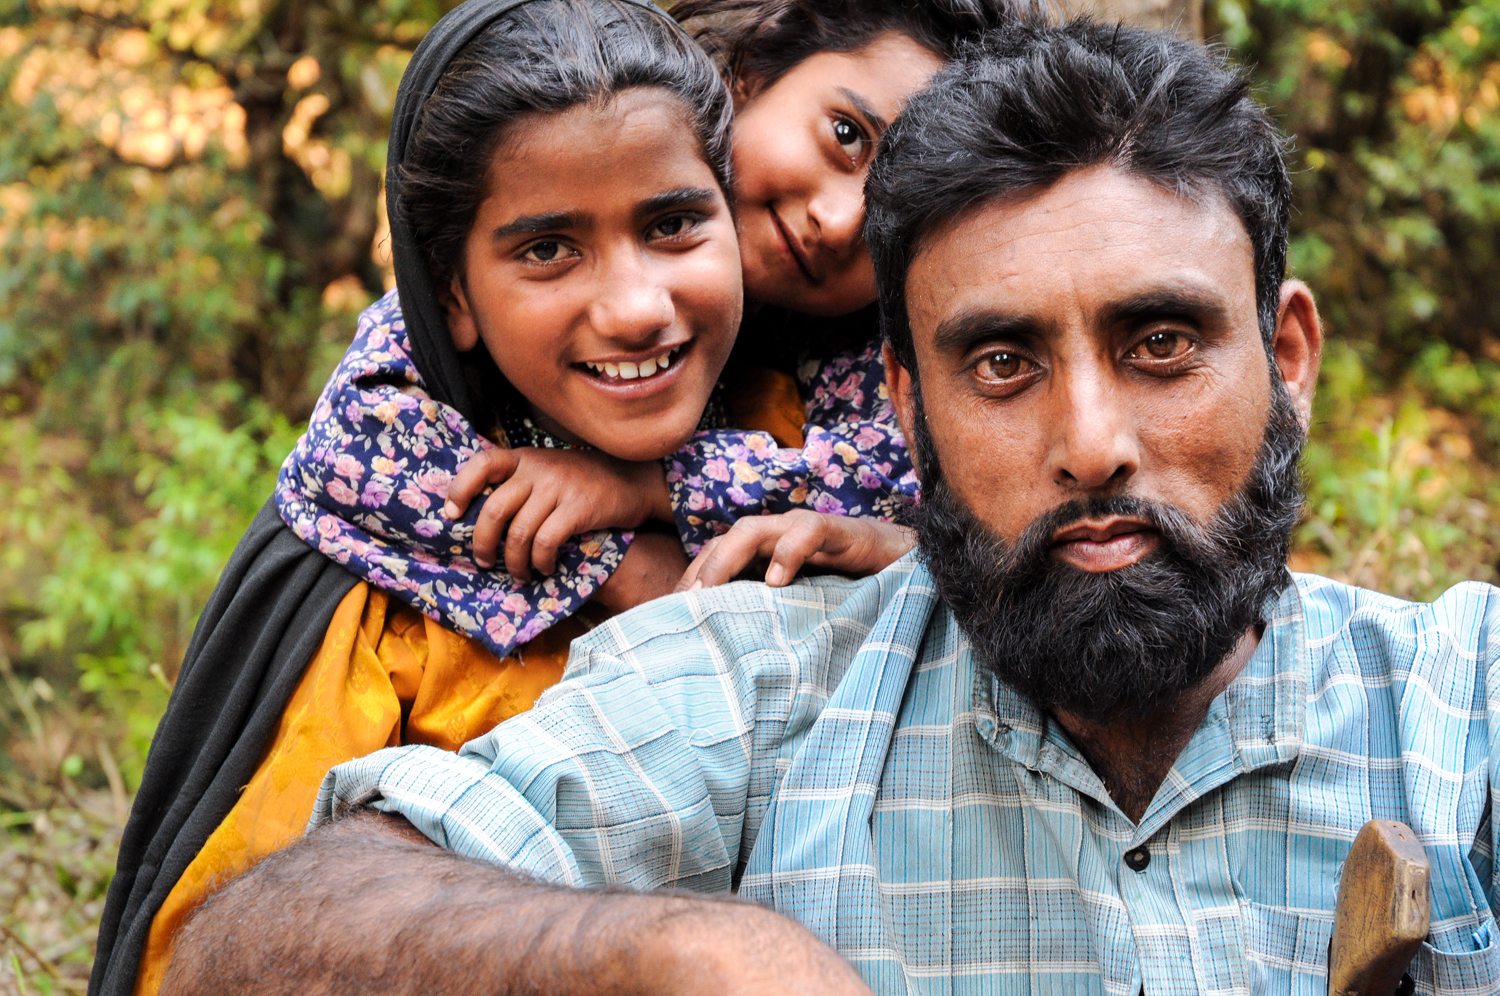 For the past few years, the family has been able to return to its ancestral meadows,but still has deep insecurities about what the future holds. Their best hope is India's Forest Rights Act - which  should protect their access to their traditional lands, but is unevenly implemented. Here, Dhumman's daughters Bashi and Salma, with his nephew, Mustooq..